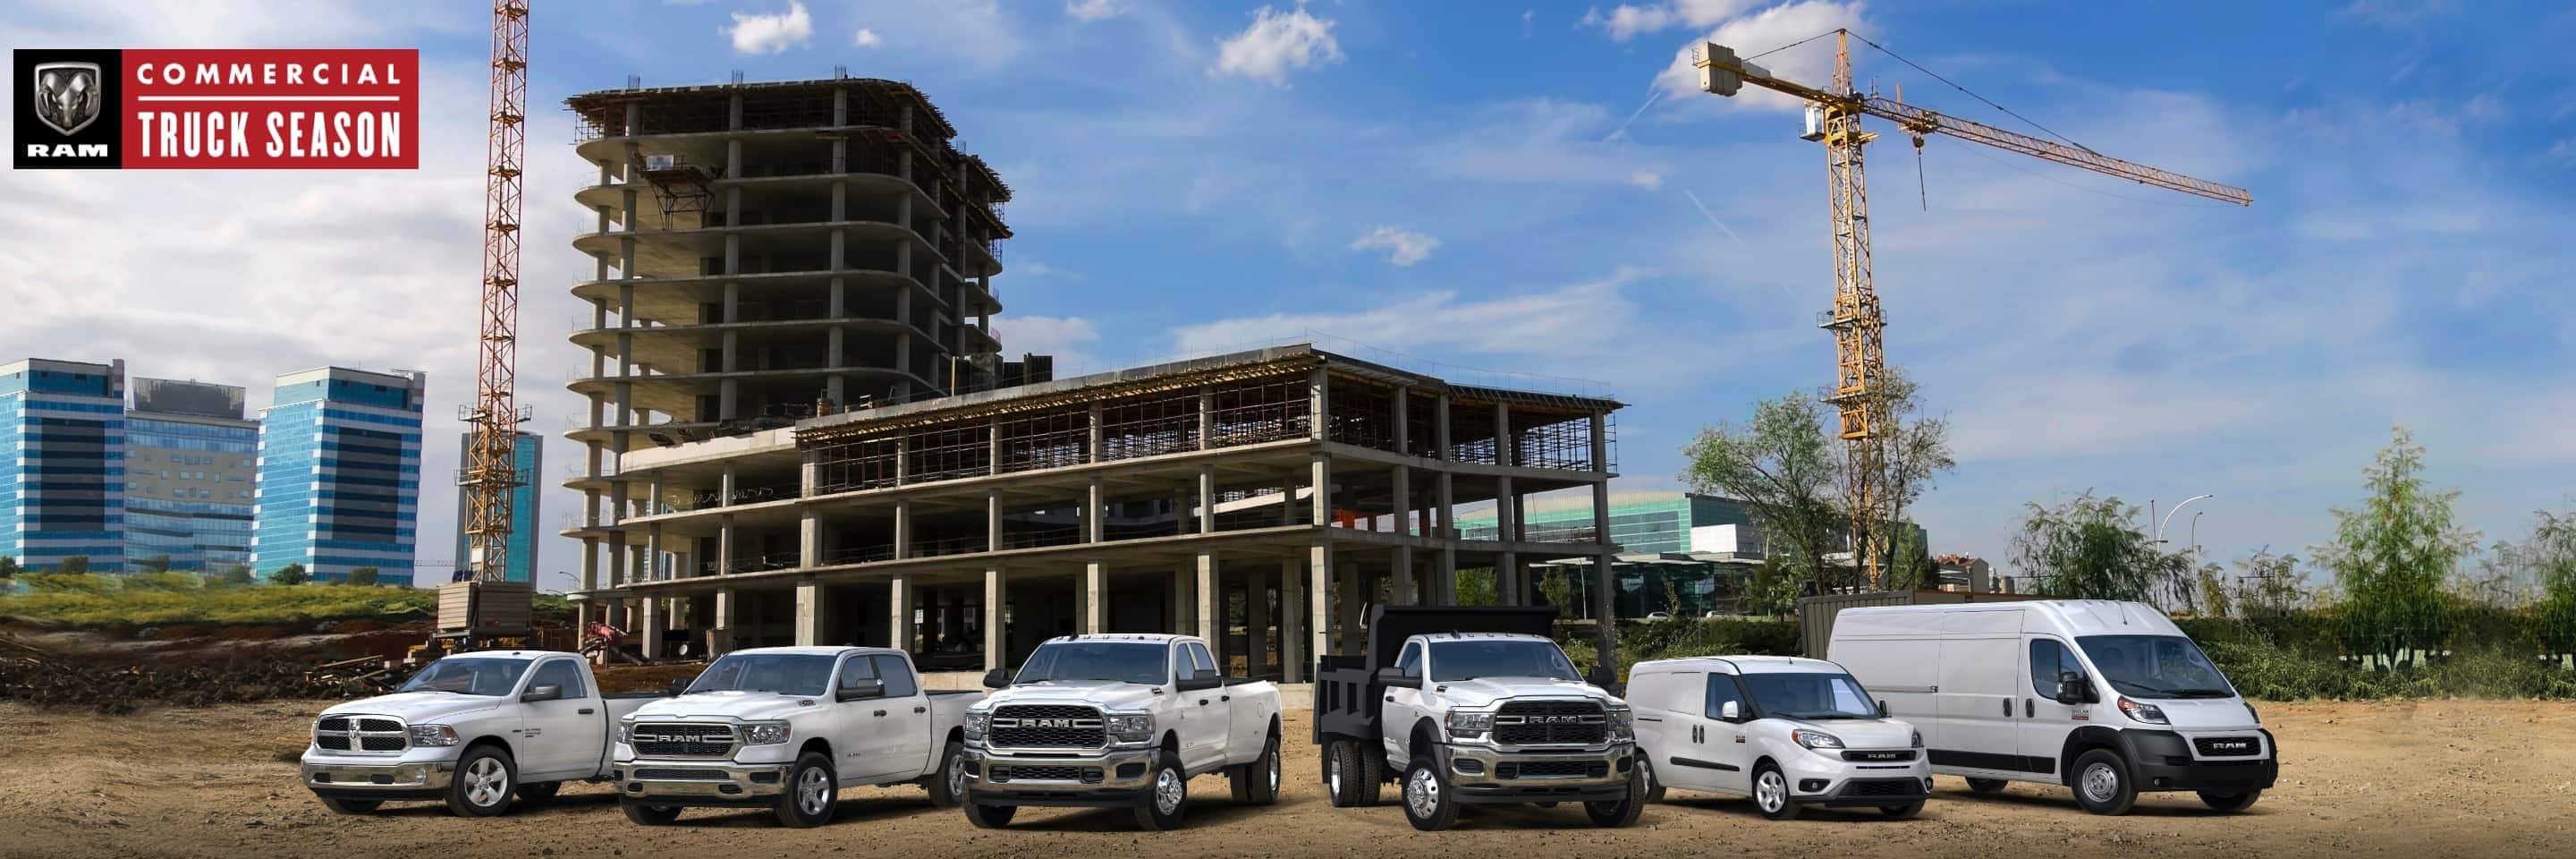 The 2021 Ram lineup parked at a commercial construction site. From left to right: four Tradesman models--a Ram 1500 Classic, Ram 1500, Ram 3500 and Ram 5500, followed by a Ram ProMaster City SLT Cargo Van and a Ram ProMaster 2500 Cargo Van. Ram Commercial Truck Season logo.